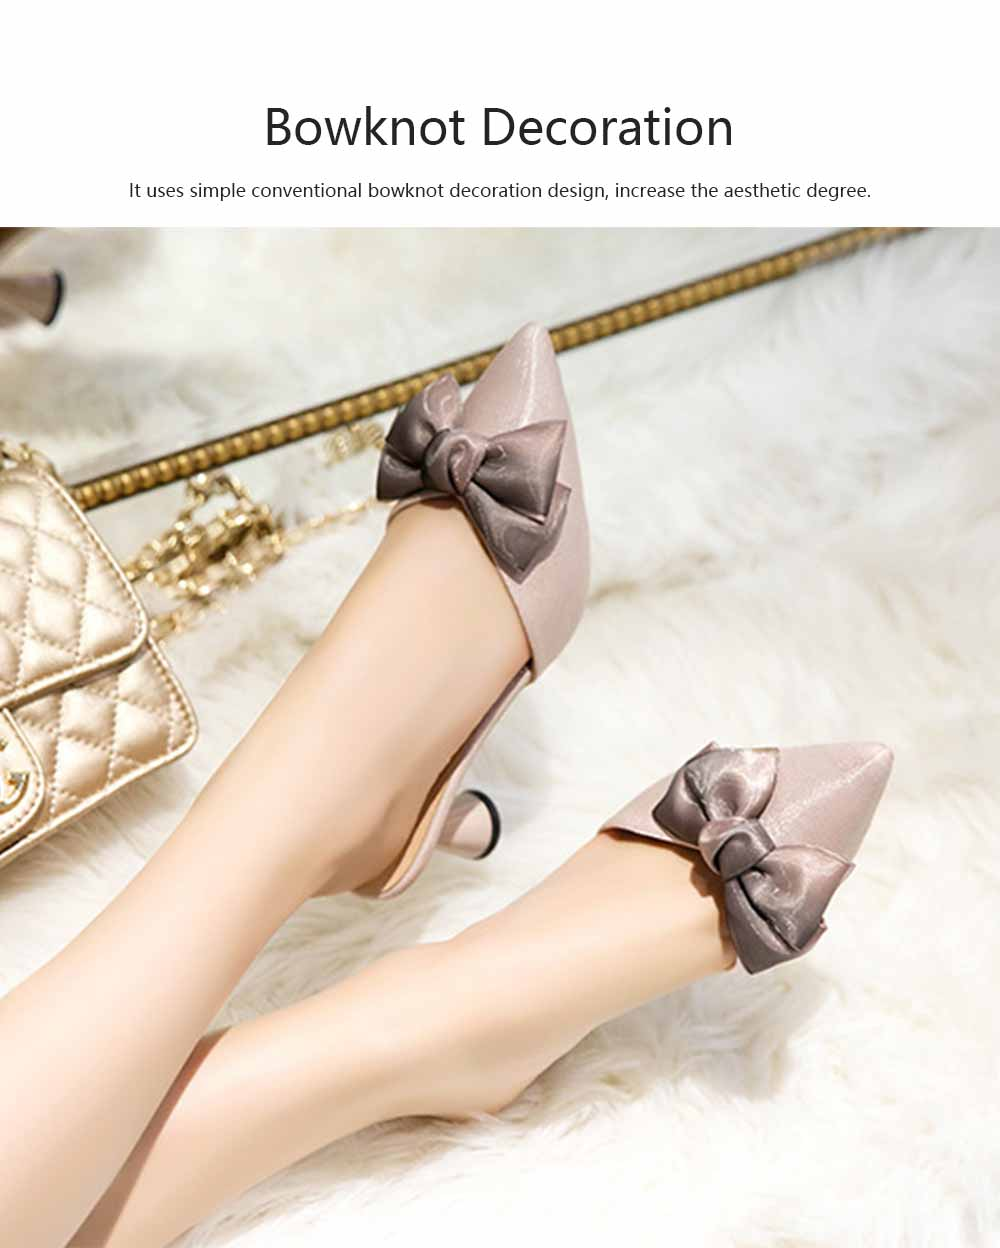 Bowknot High-heeled Sandals for Women Comfortable Breathable Non-slip Wear-resisting Wine Glass Shape High-heeled Slippers 4